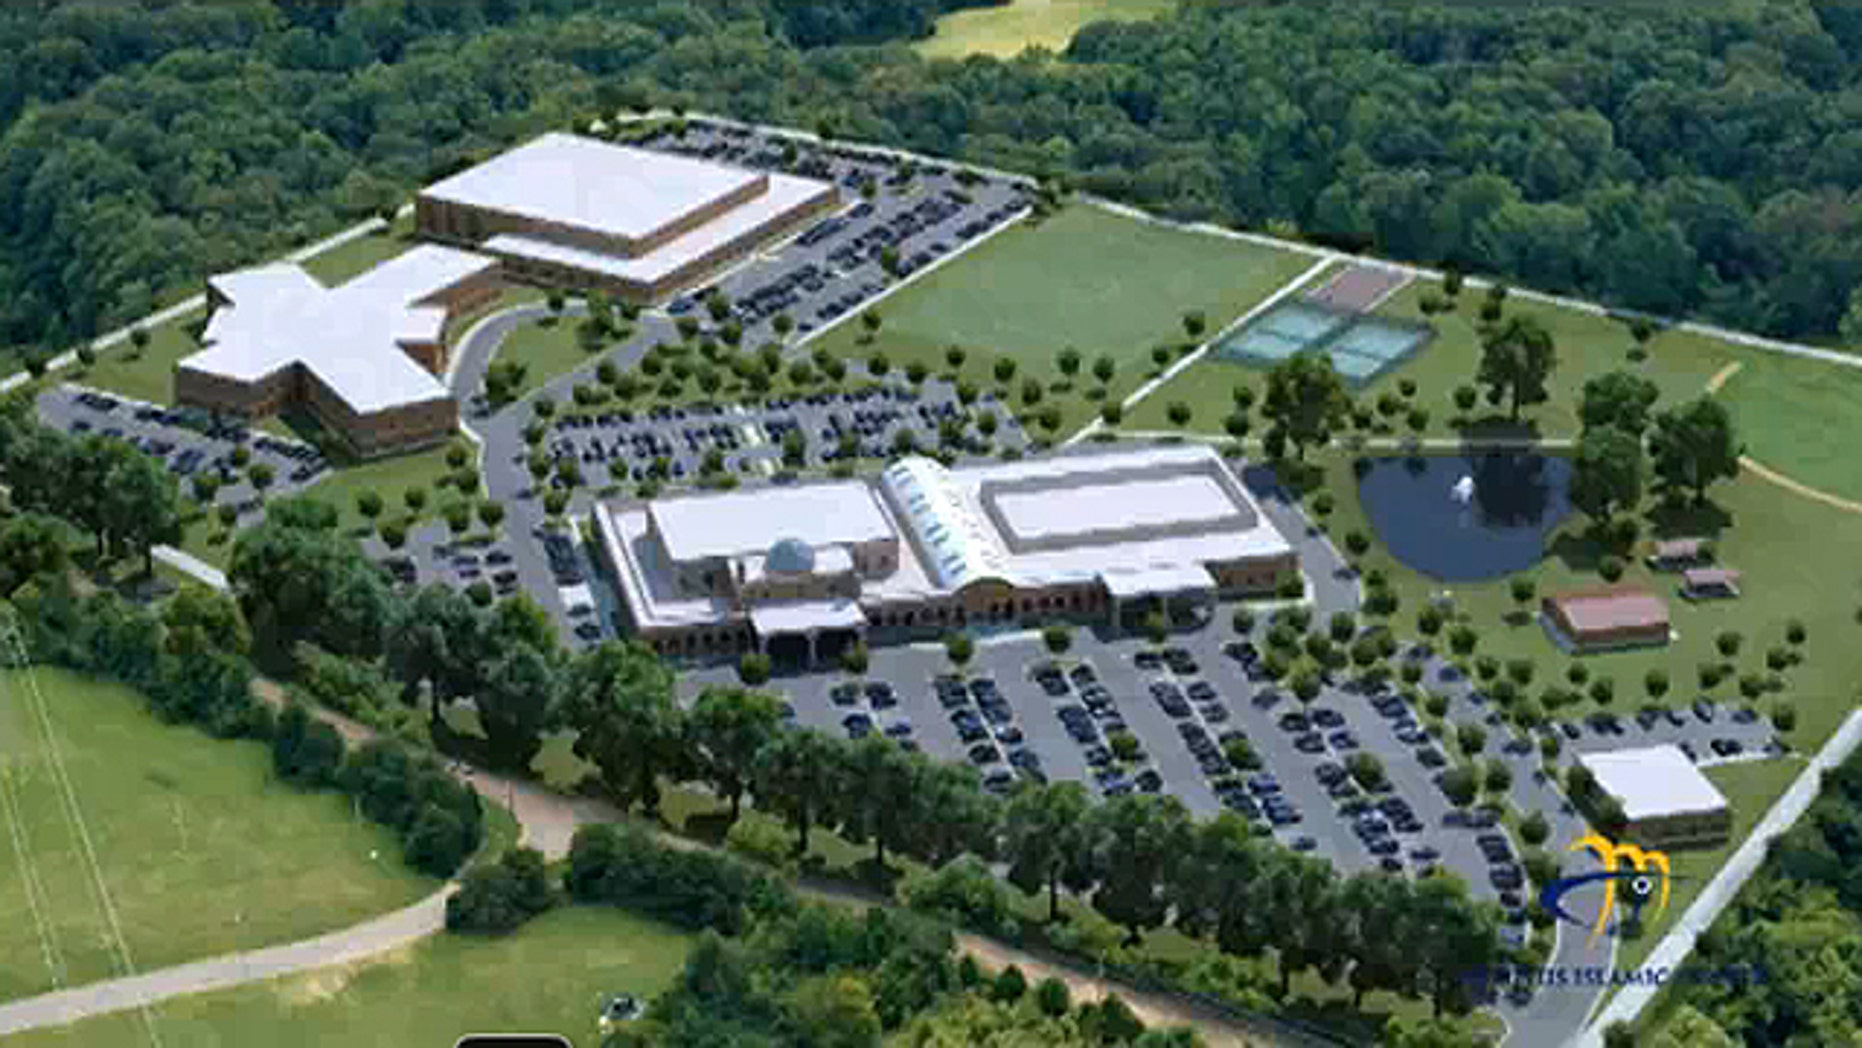 According to its 'masterplan' video the Memphis Islamic Center is set to include a worship area, classrooms, a playground, a daycare facility, gamerooms, a visitor center, media rooms, offices, a reference section, a large multiporpose hall, indoor and outdoor sports facilities, a gym and indoor and outdoor gathering places.